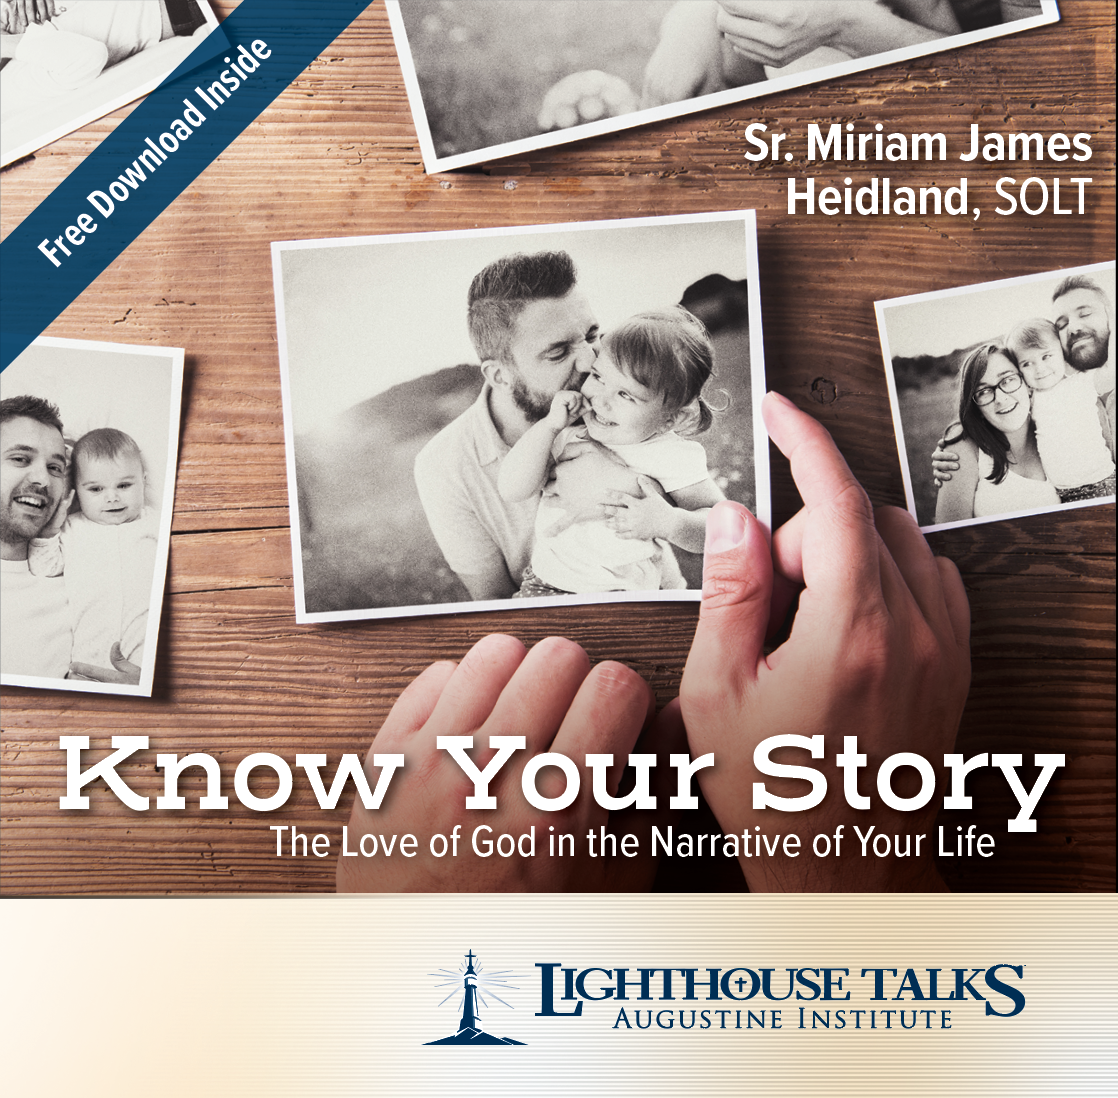 Know Your Story: The Love of God in the Narrative of Your Life - Sr. Miriam James Heidland SOLT